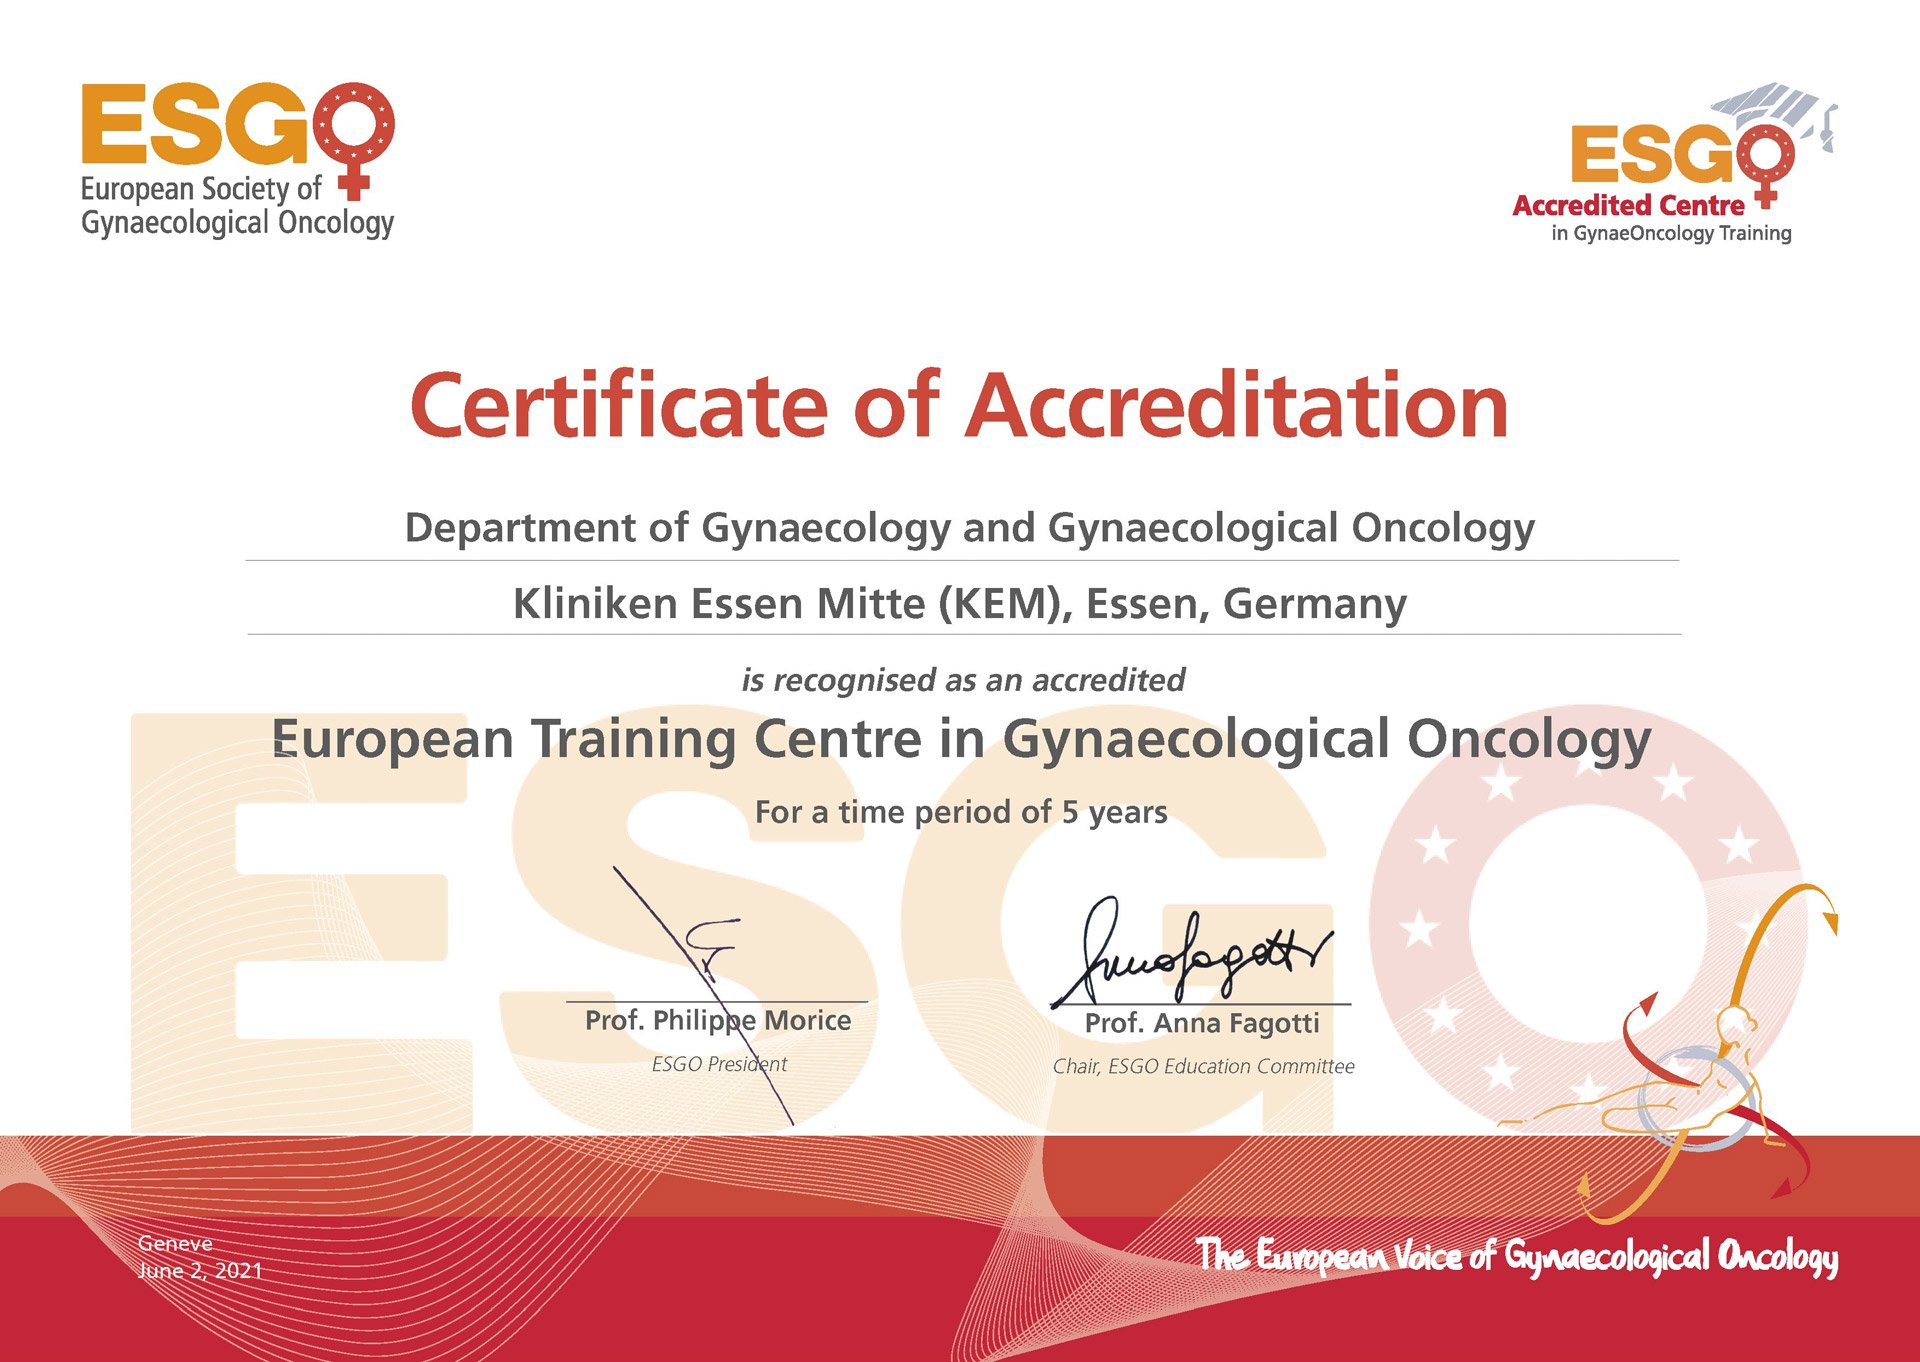 European Training Centre in Gynaecological Oncology